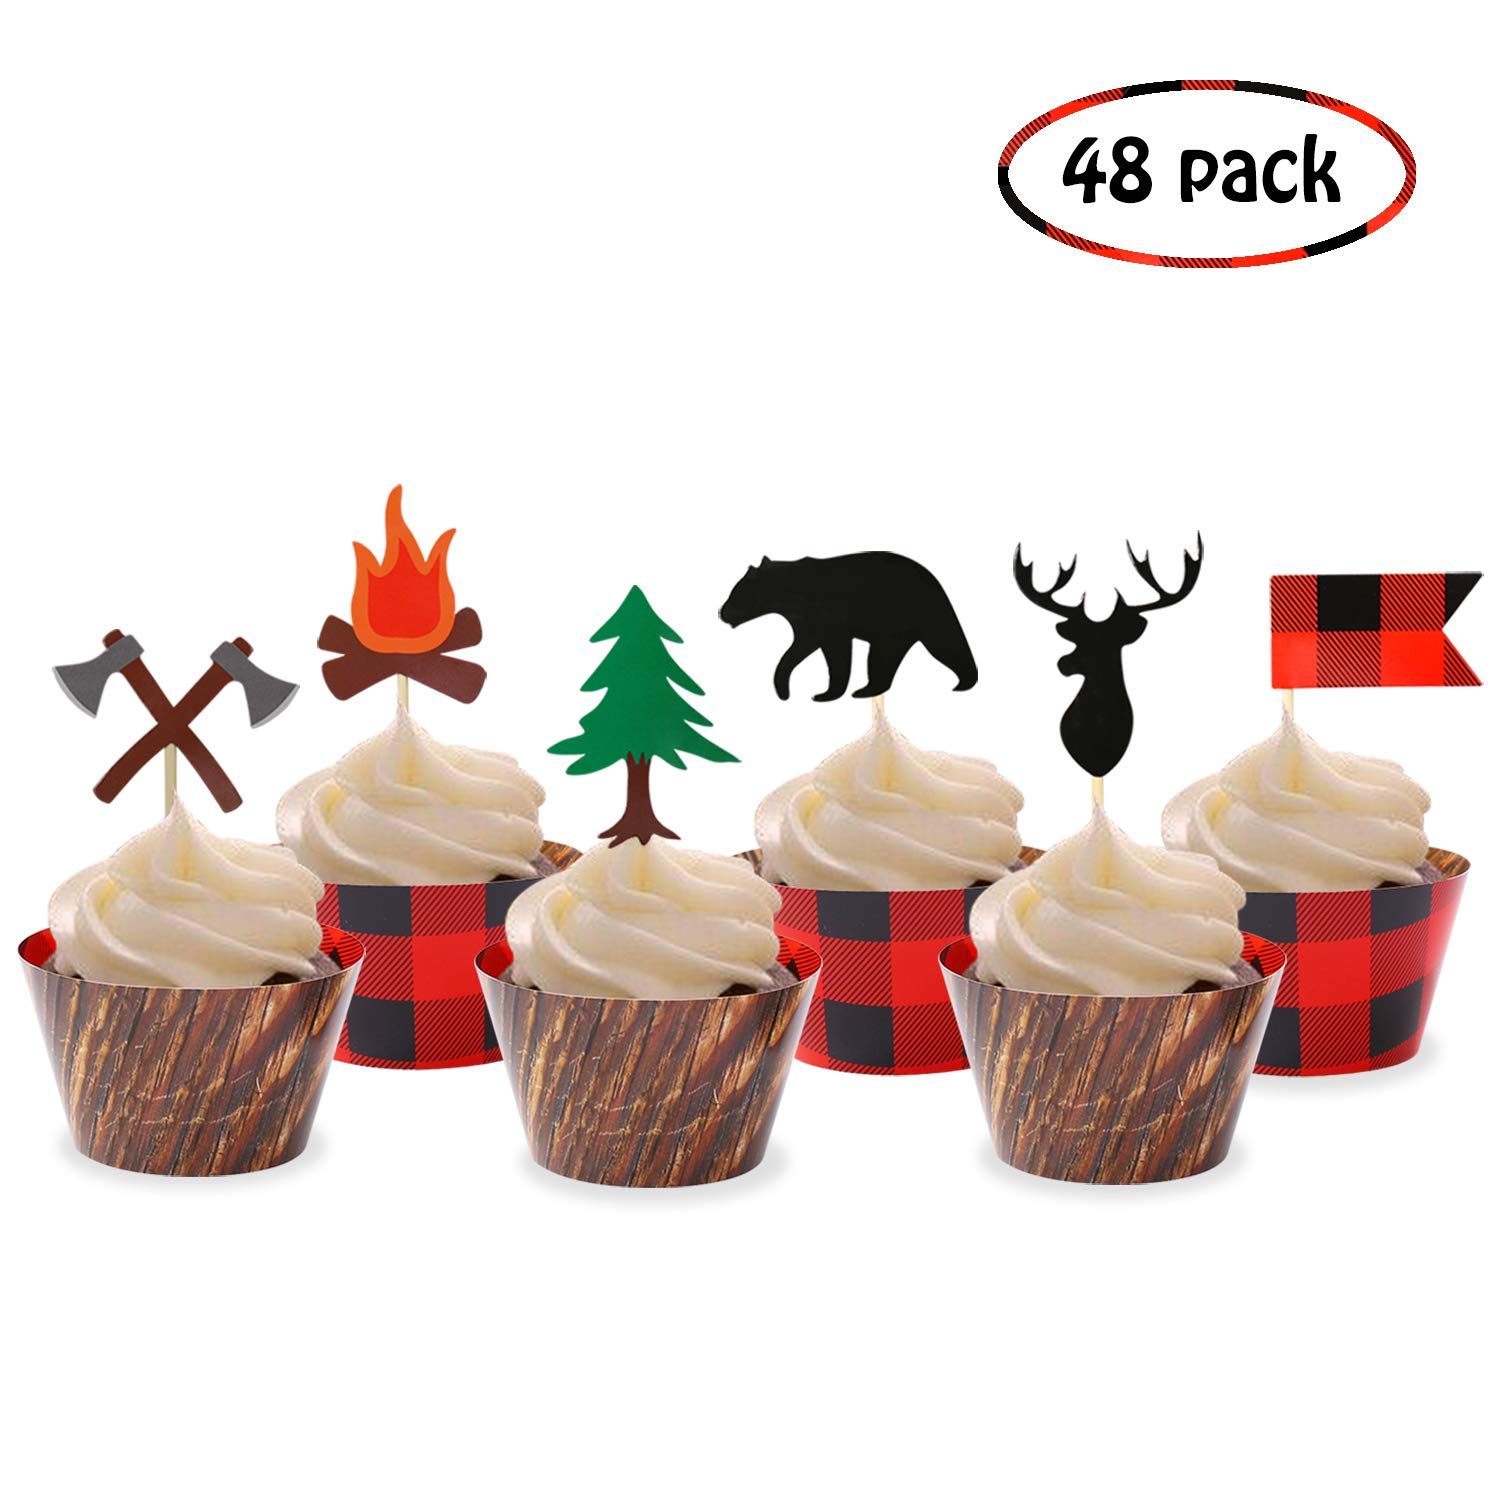 Camping Cupcake Toppers Wood Grain Buffalo Plaid Wrappers Woodland Theme Party Decoration Supplies(48 Pack)